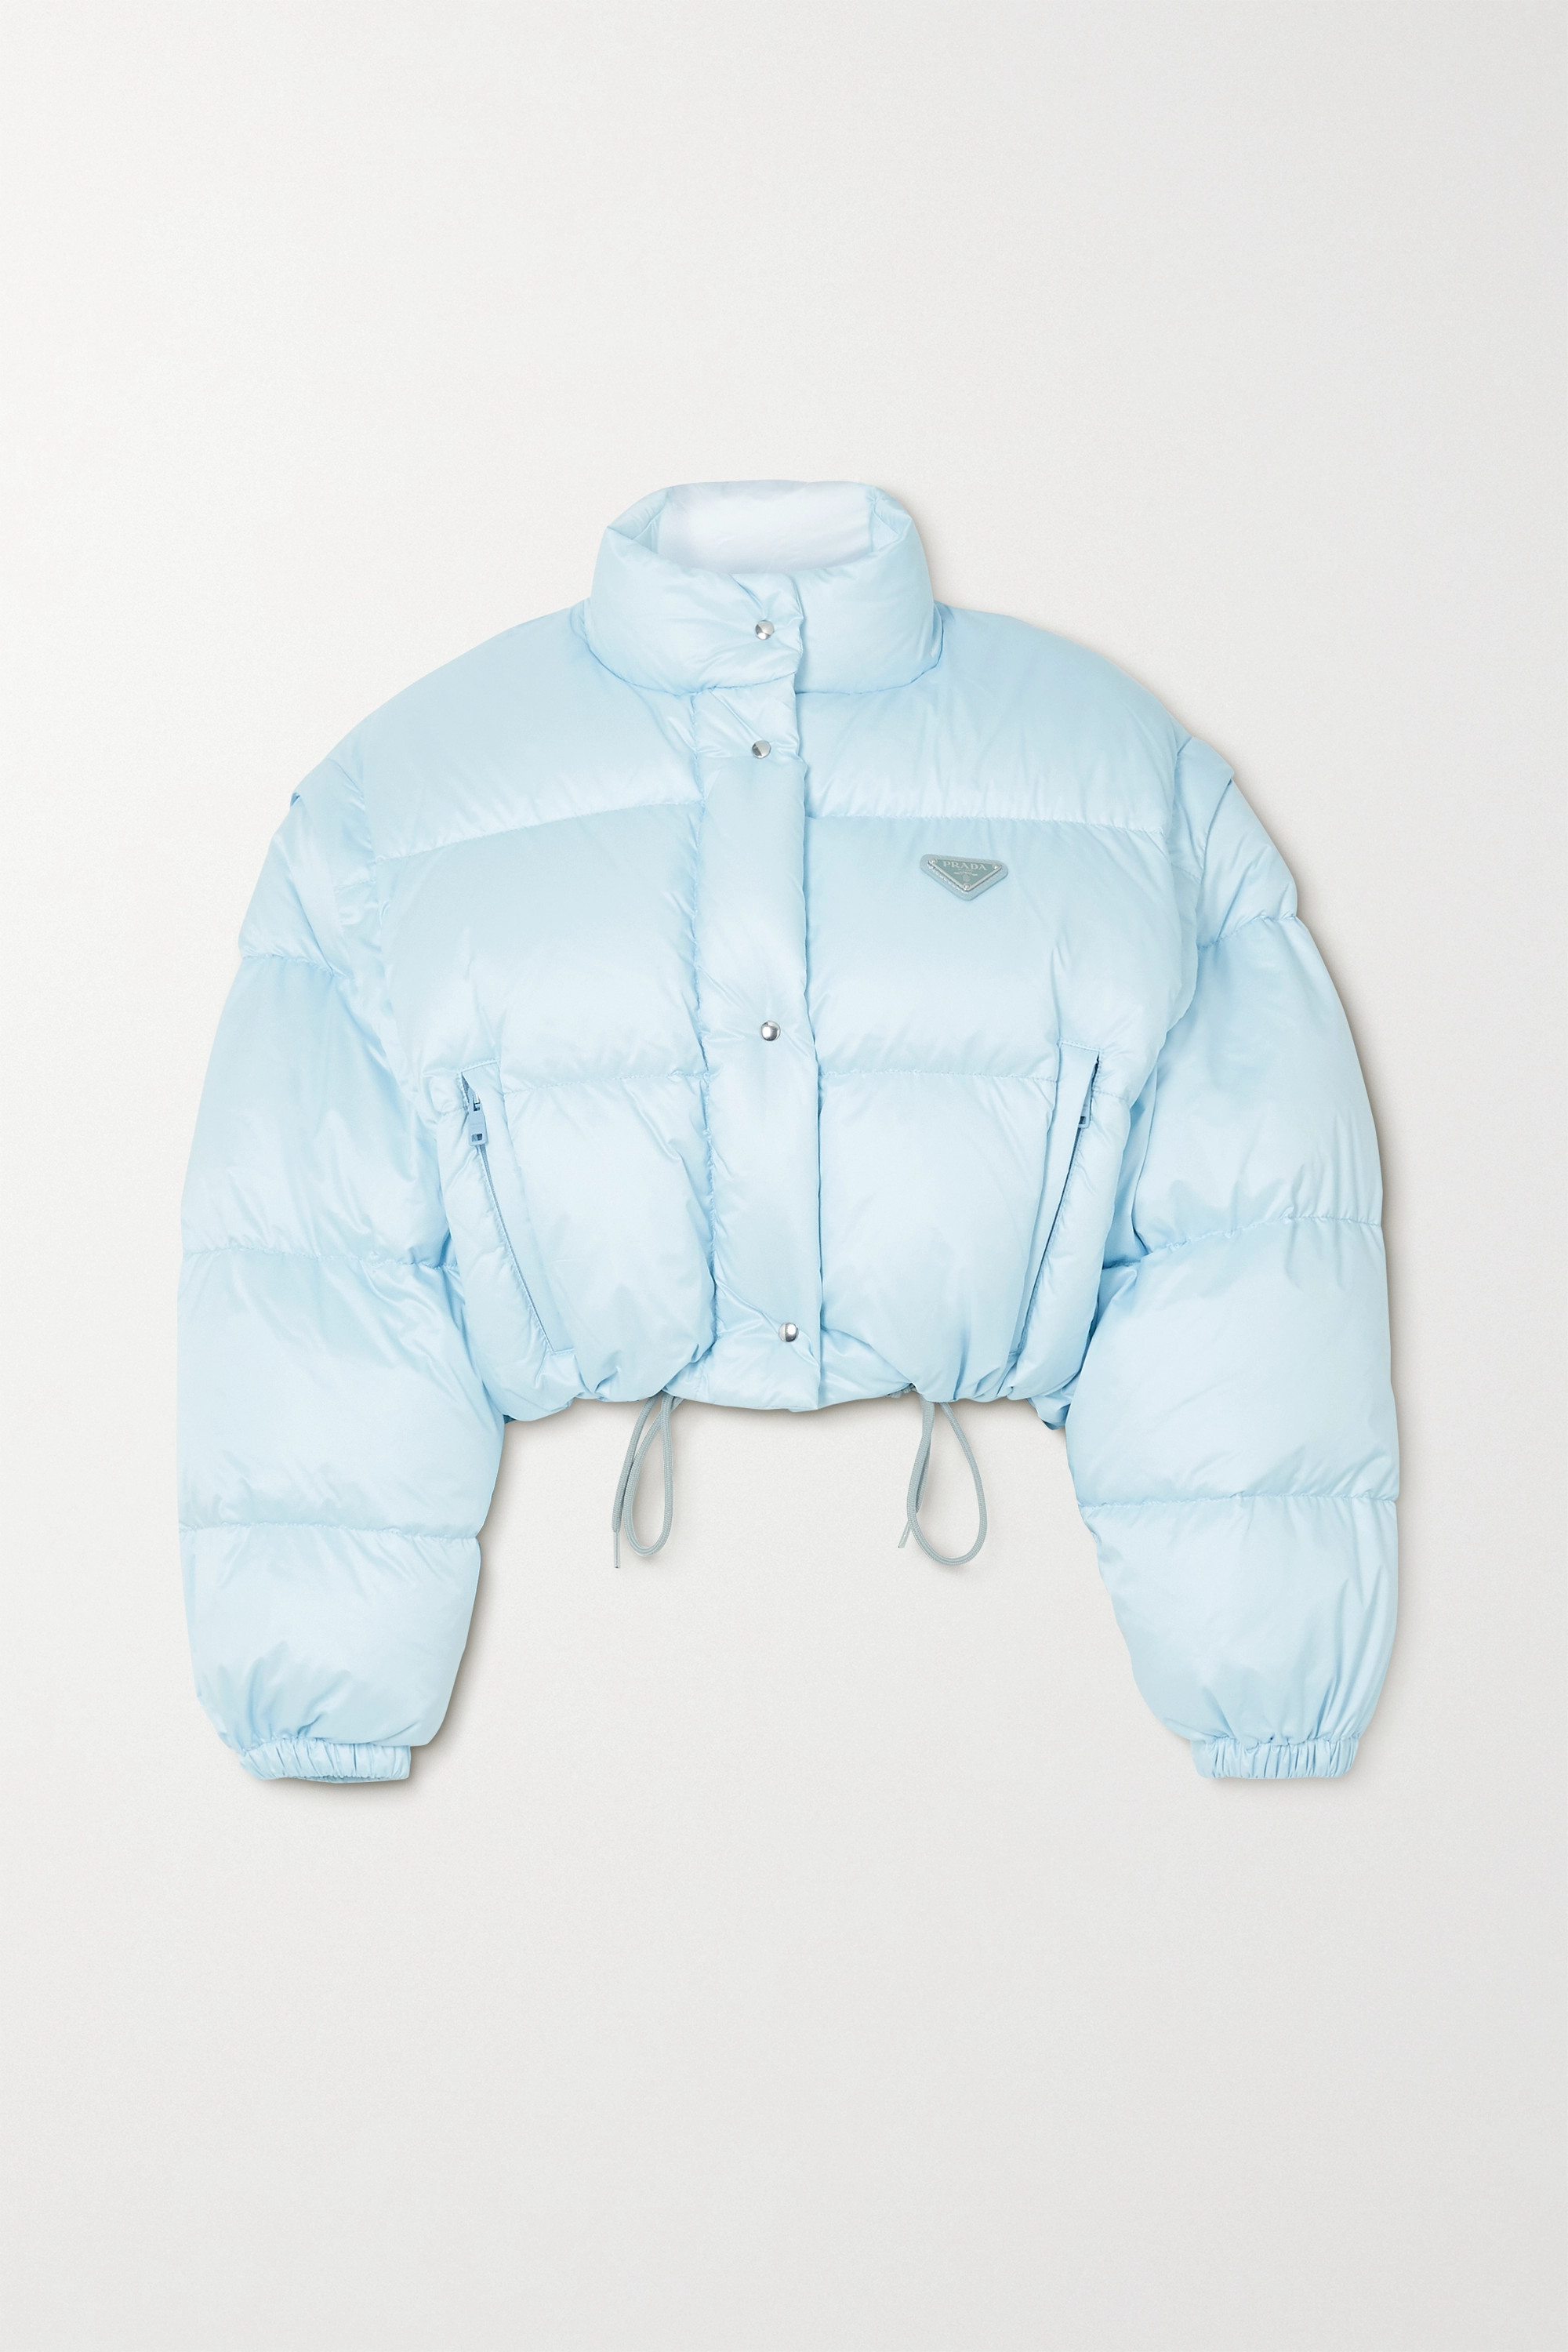 Prada Cropped convertible appliquéd quilted nylon down jacket